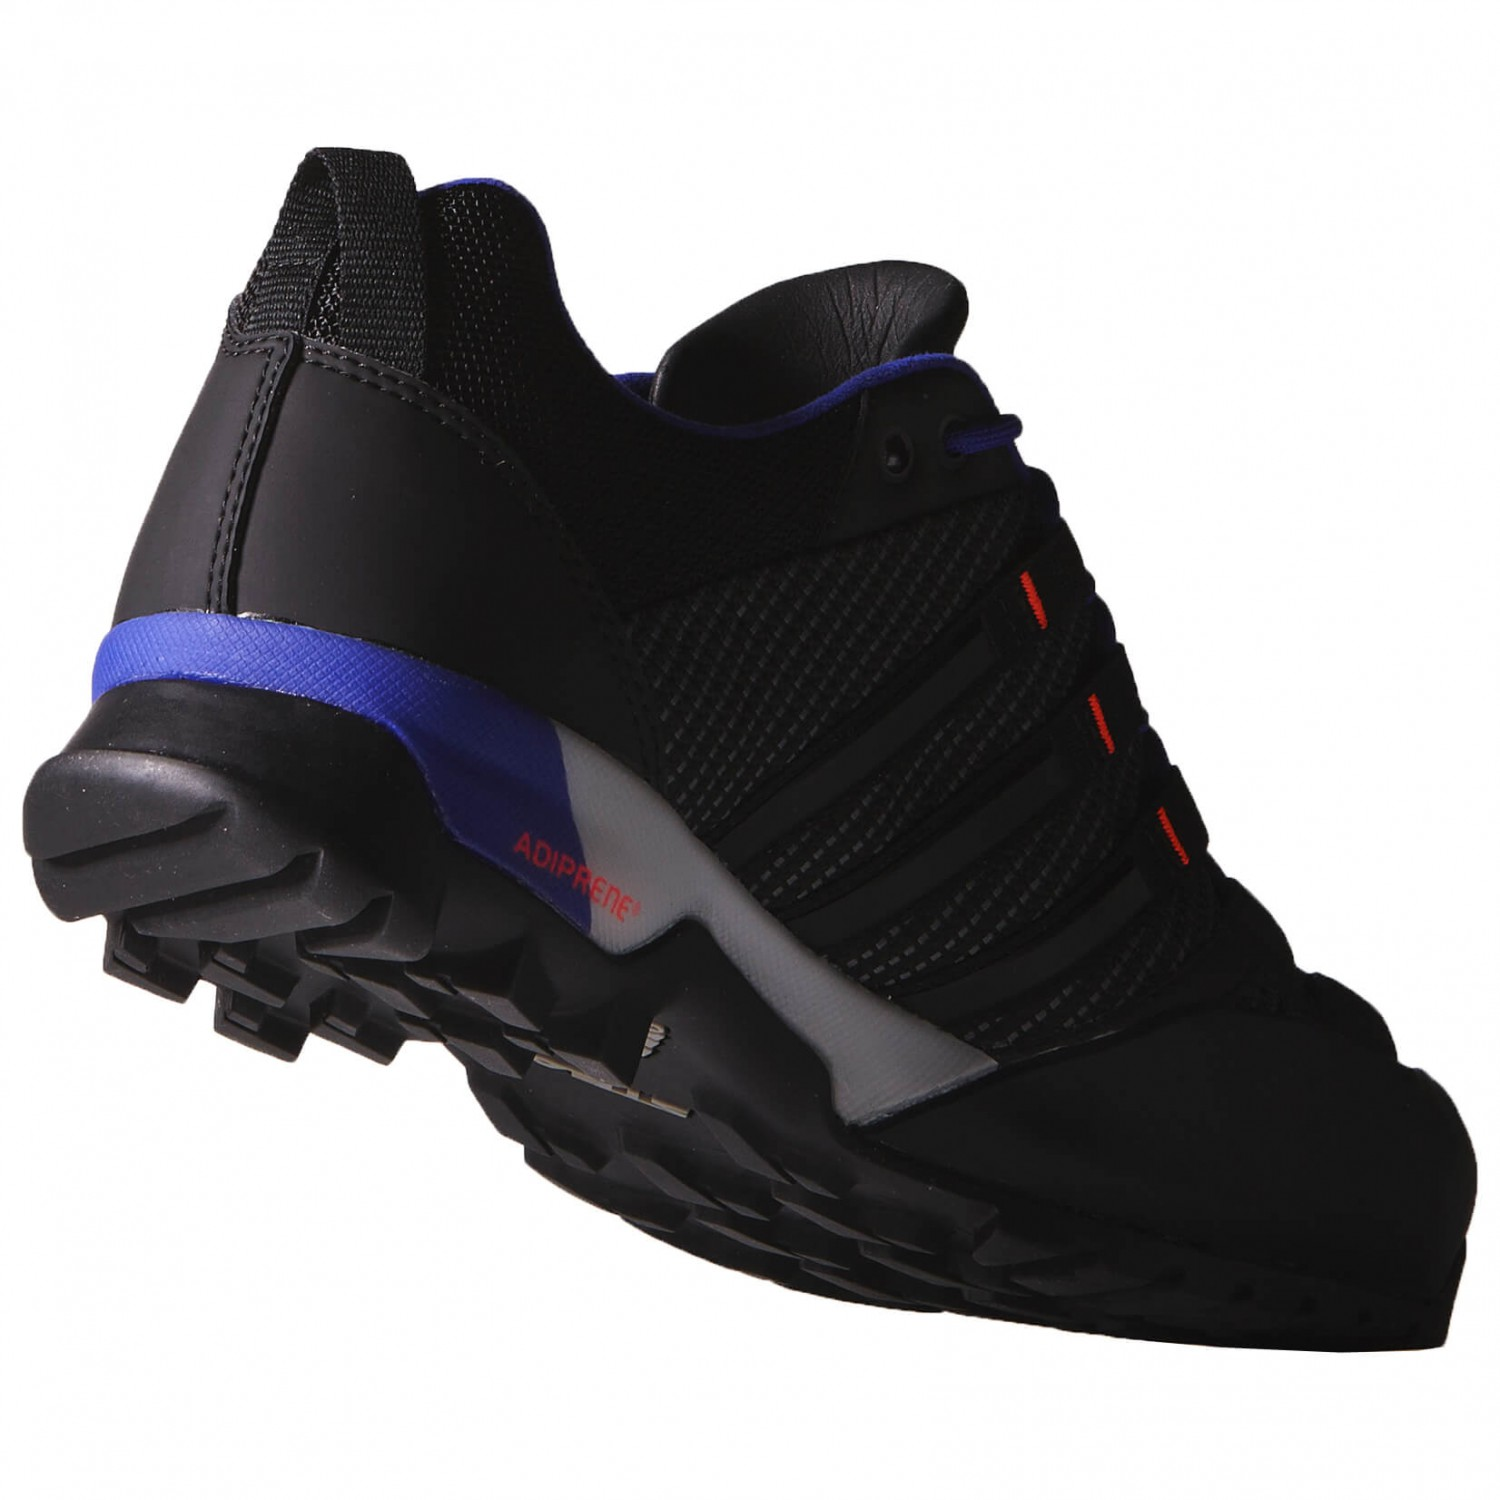 special for shoe lowest price popular brand adidas - Women's Terrex Scope GTX - Approach shoes